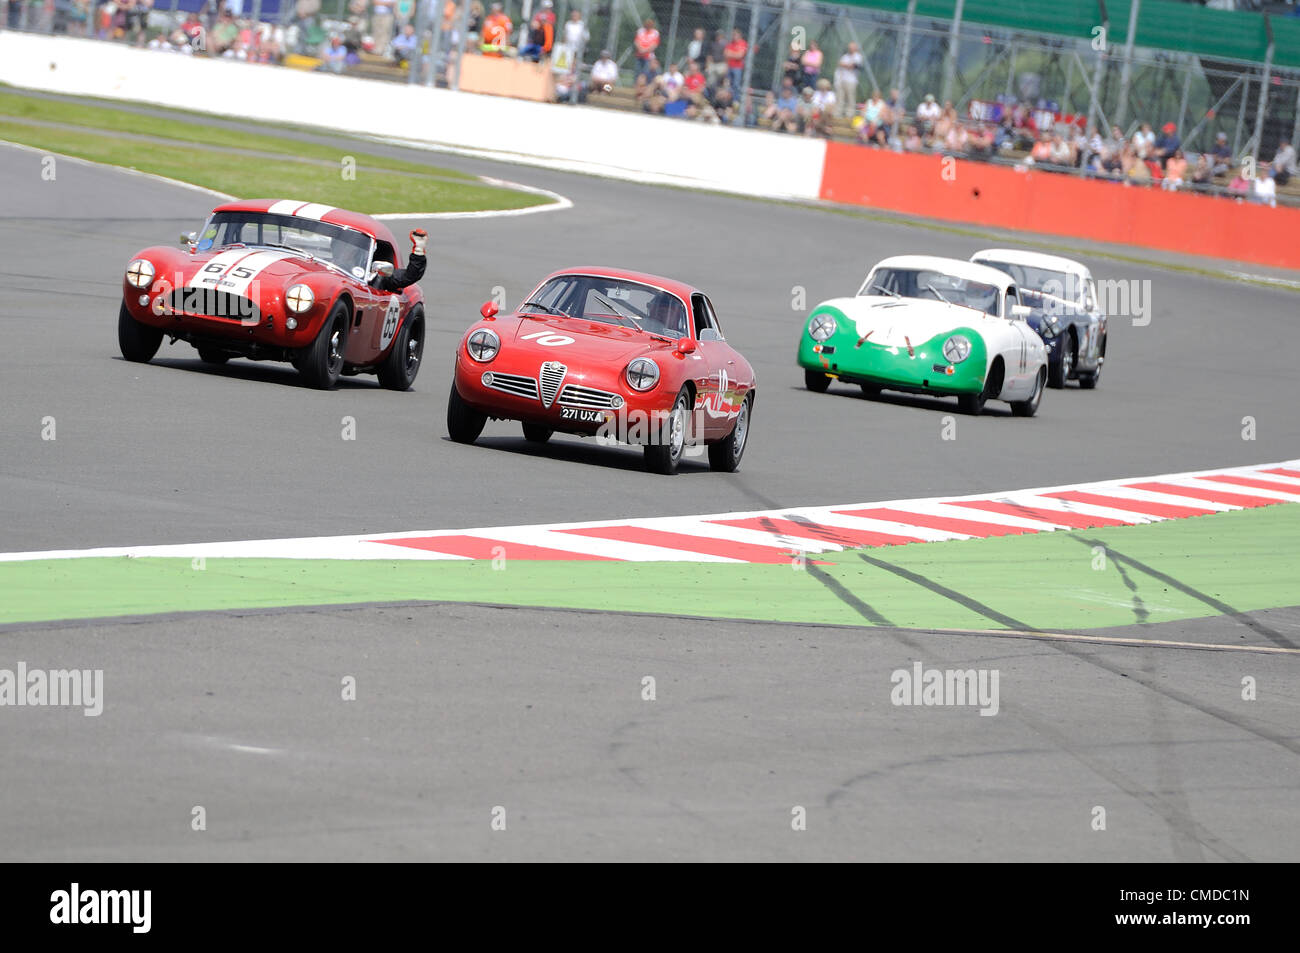 22nd July 2012, Silverstone, UK.  The driver of Martin Hunt and Patrick Blakeney-Edwards' AC Cobra getures out - Stock Image